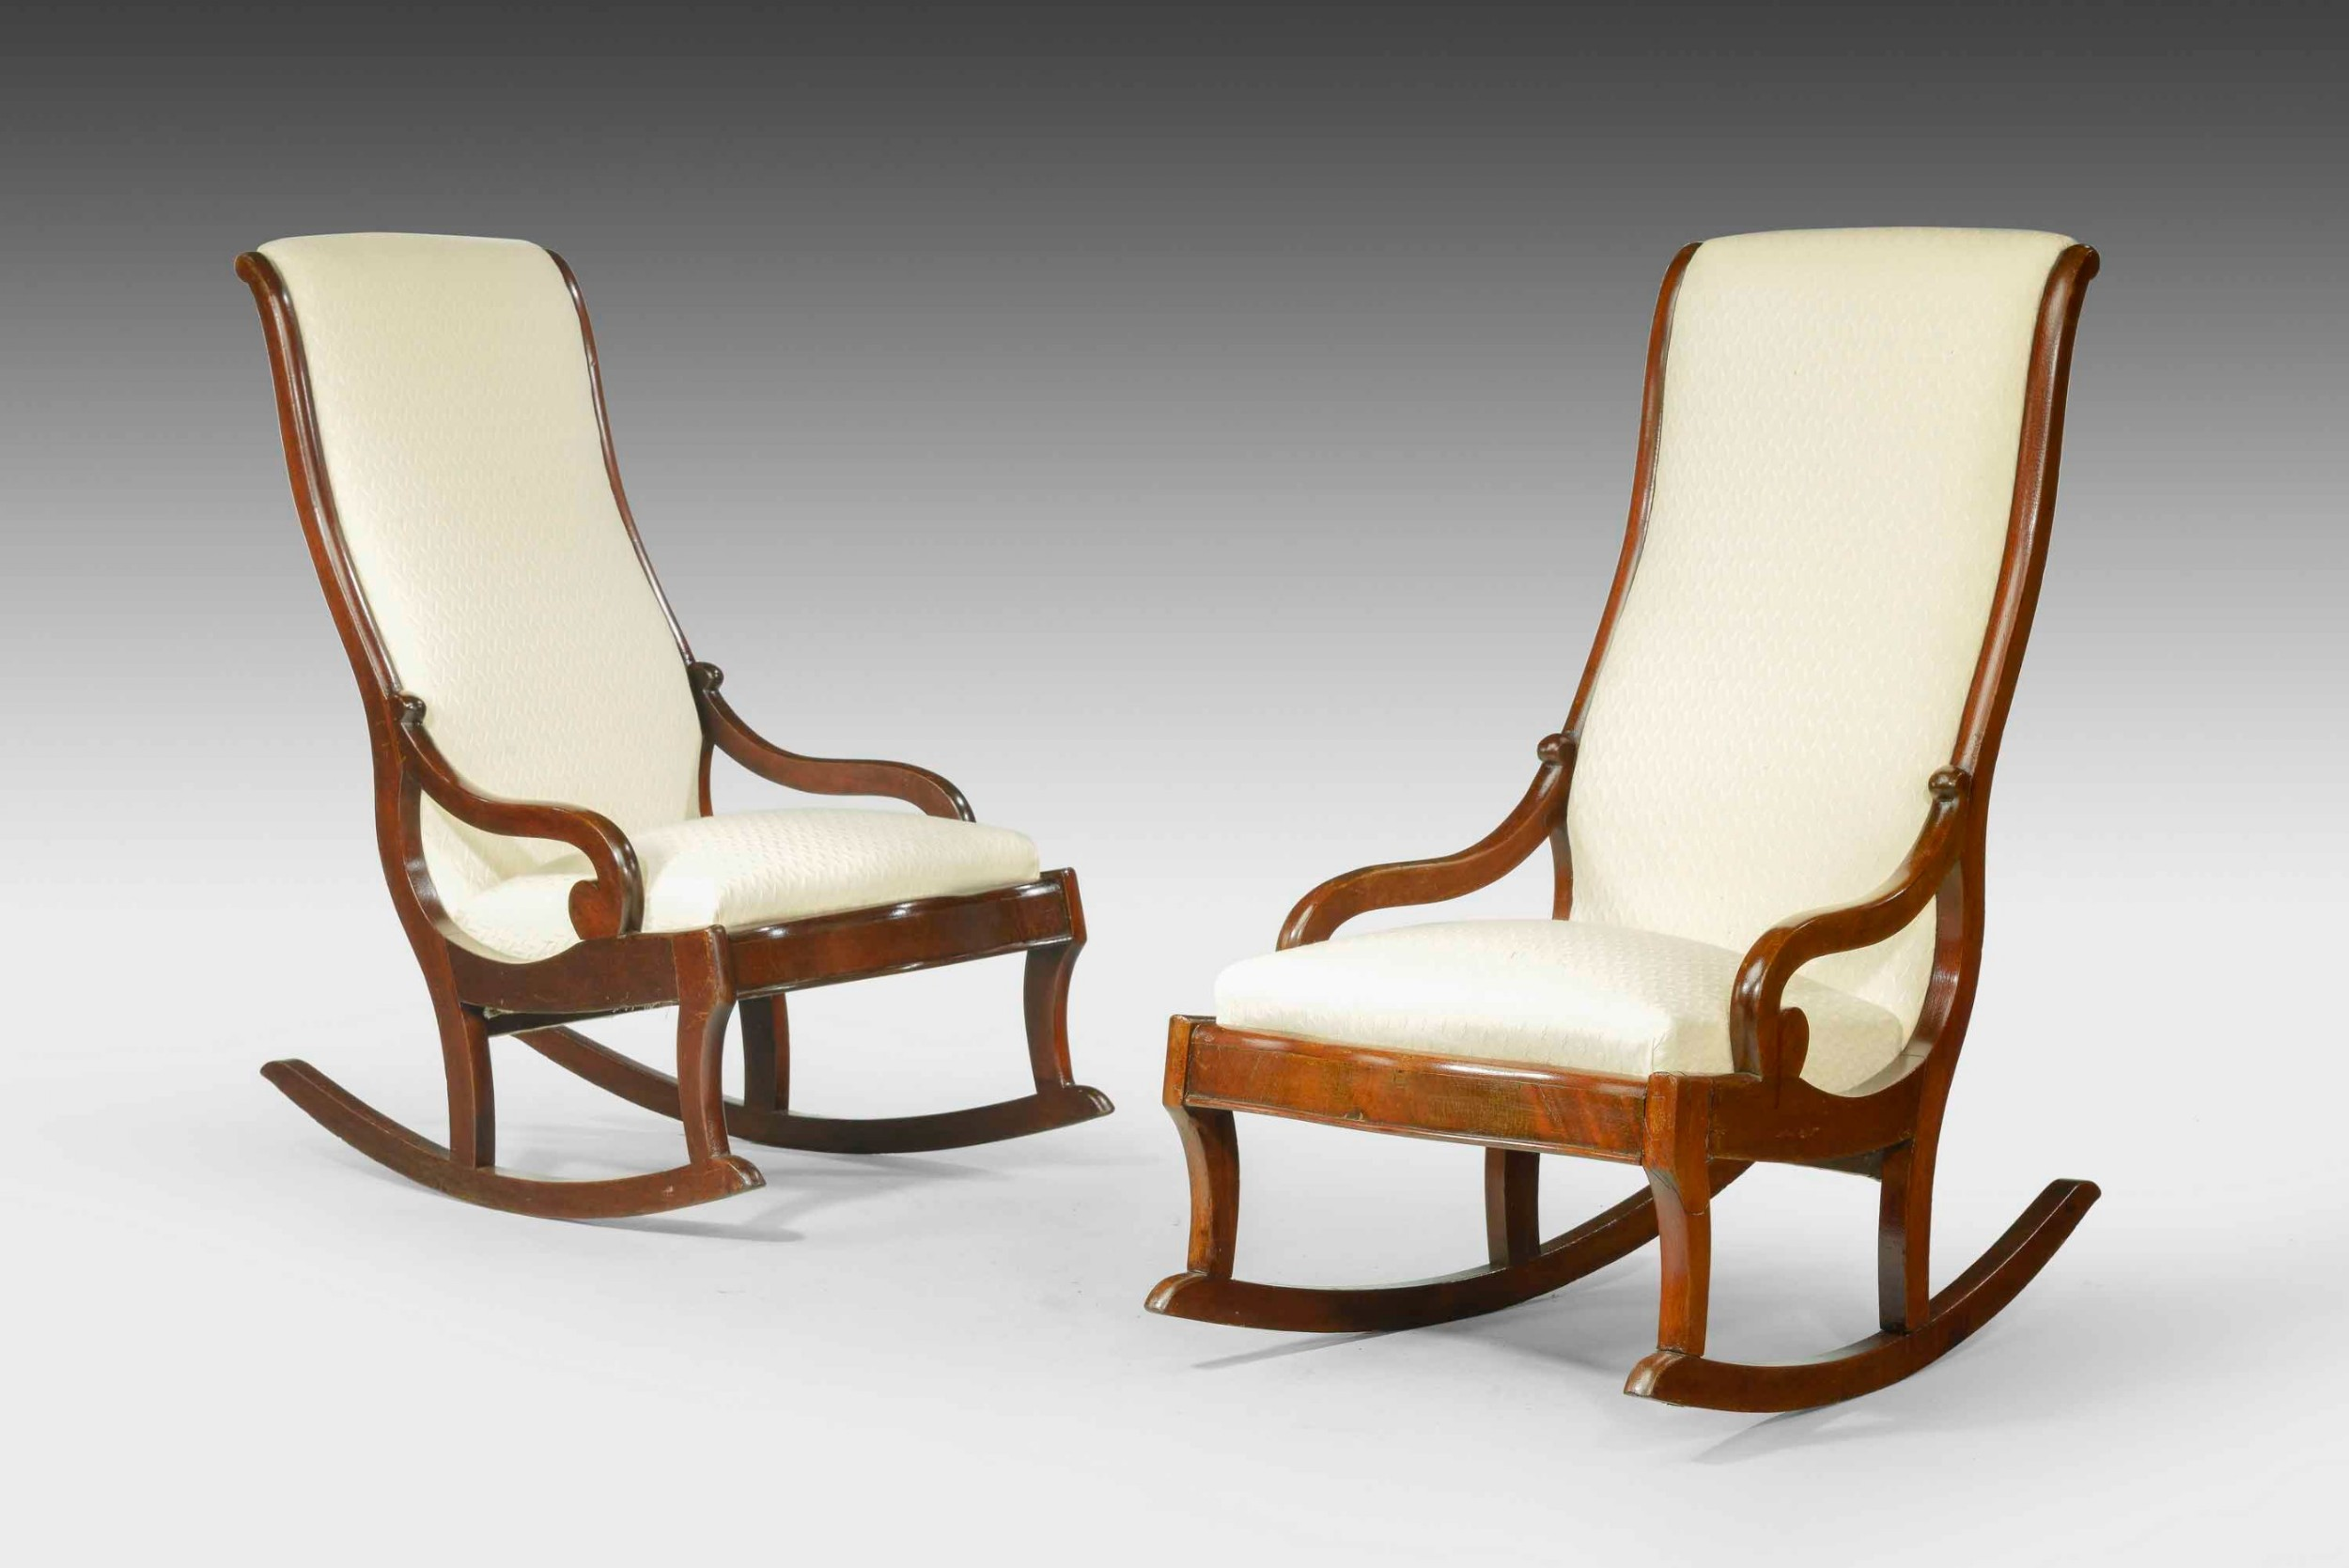 a pair of mid19th century mahogany framed rocking chairs